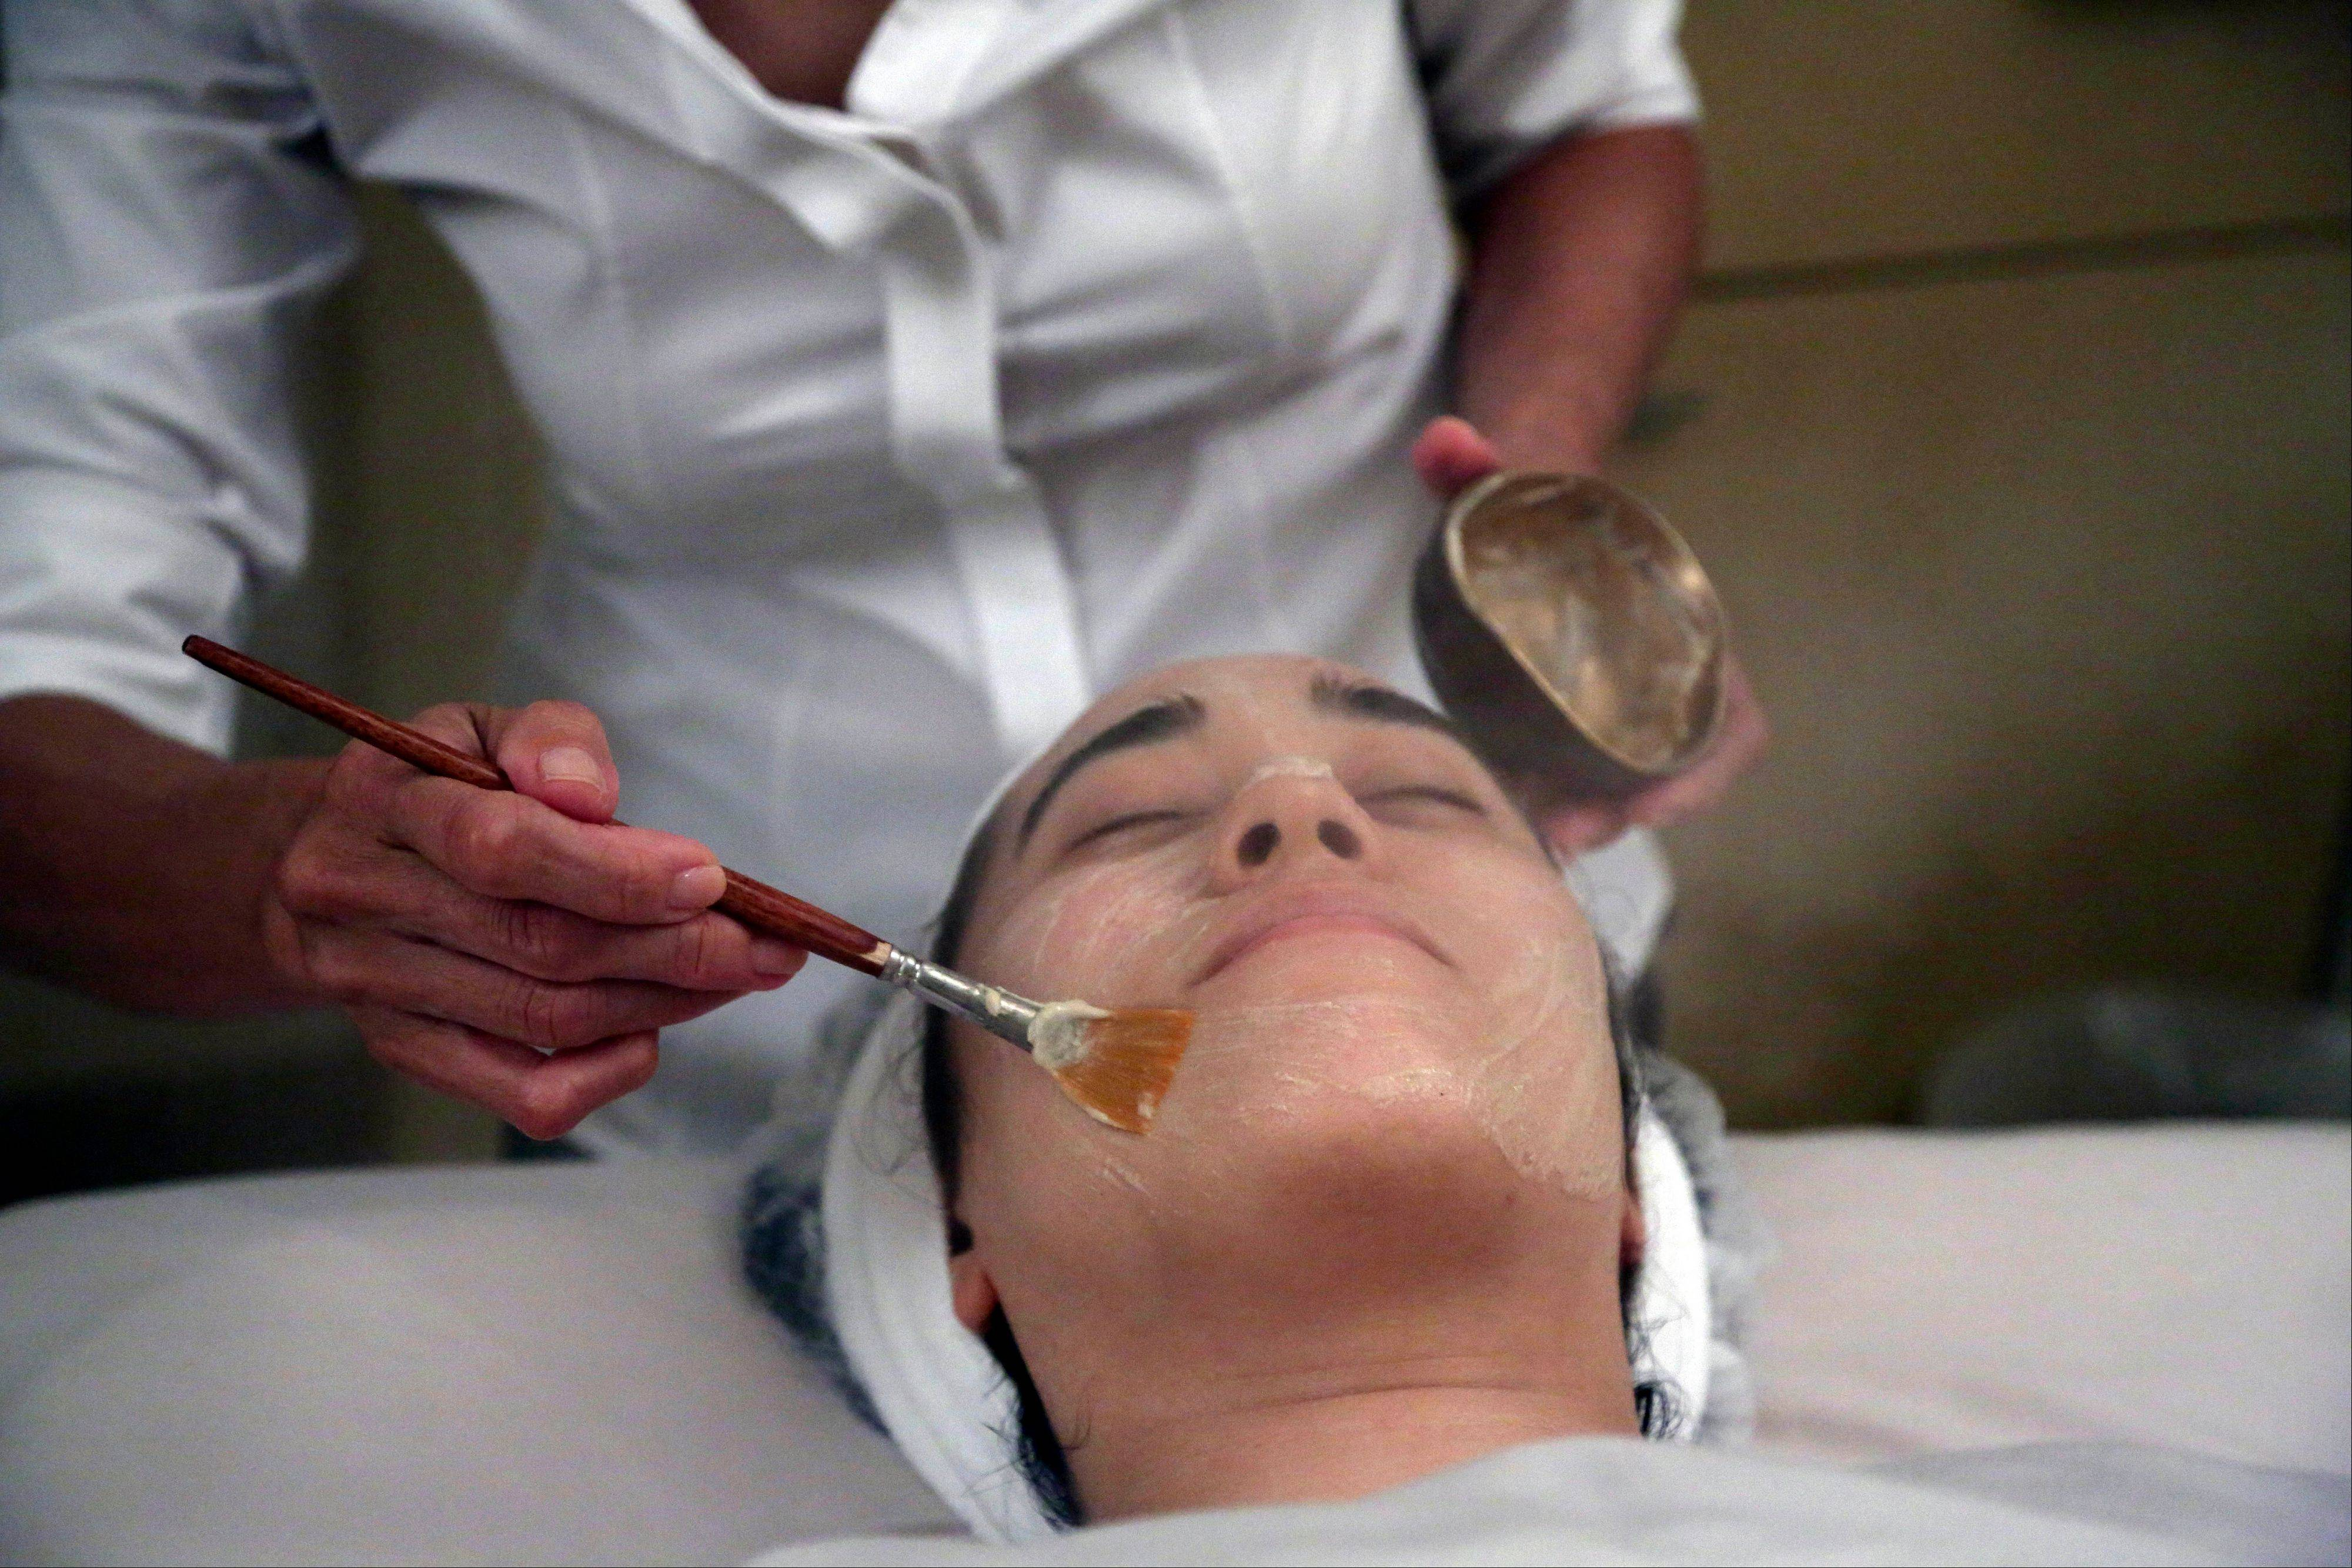 Salon owner Shizuka Bernstein gives what she calls a Geisha Facial to Mari Miyoshi at Shizuka New York skin care in New York. The facial, which Bernstein has been offered for five years, is a traditional Japanese treatment using imported Asian nightingale excrement mixed with rice bran, and goes for $180 a pop.